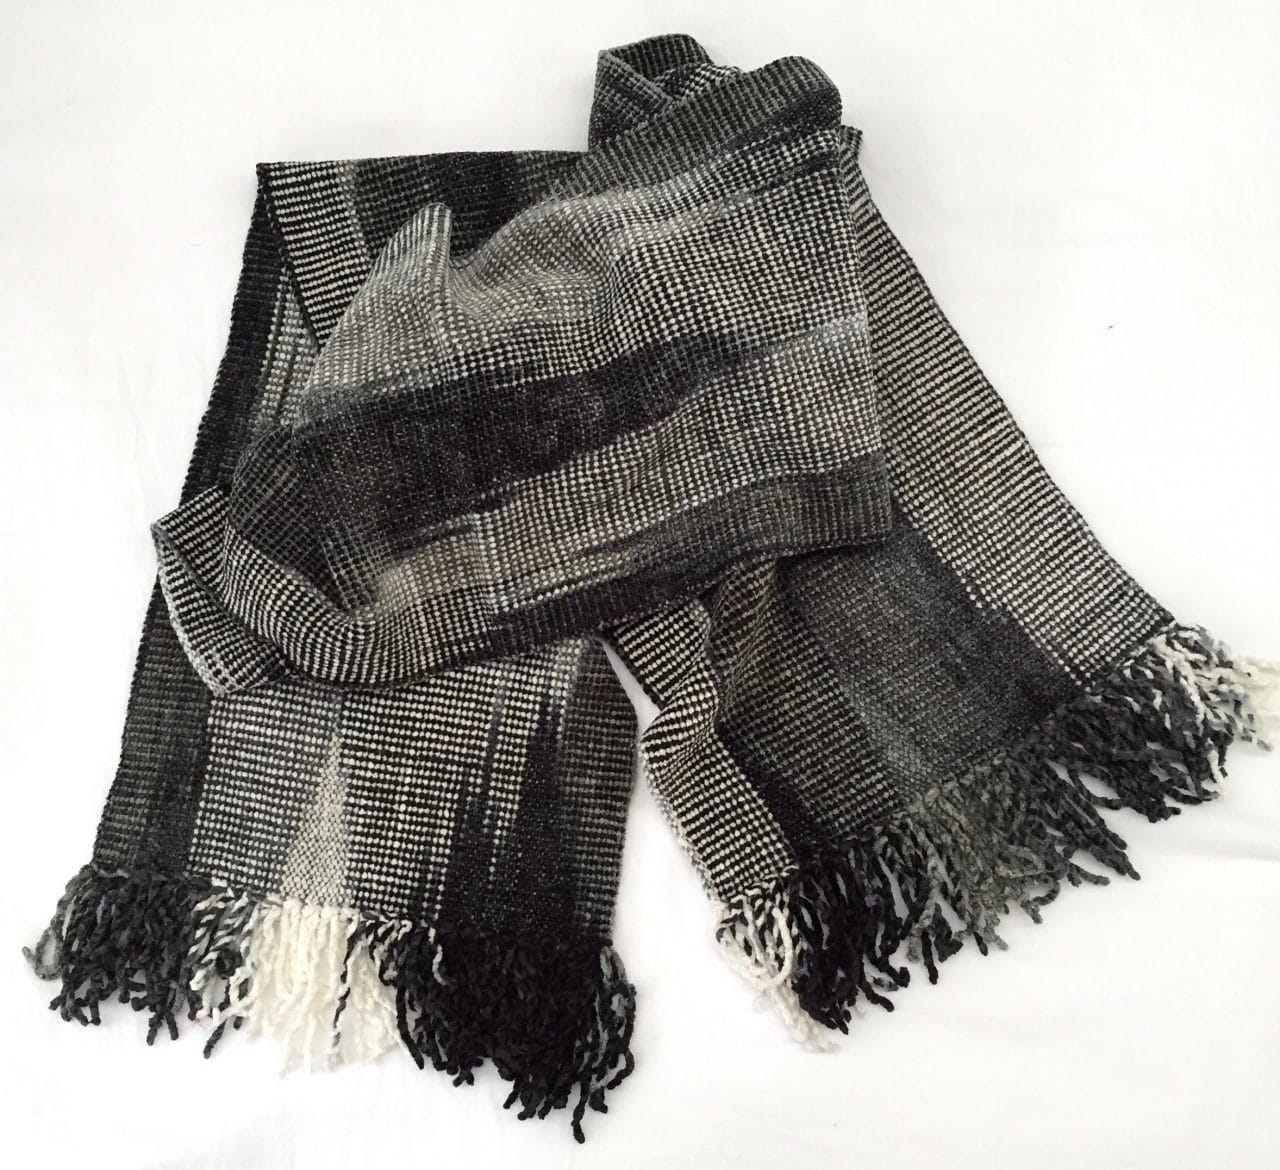 Black, White, Grays - Bamboo Chenille Handwoven Scarf 8 x 68